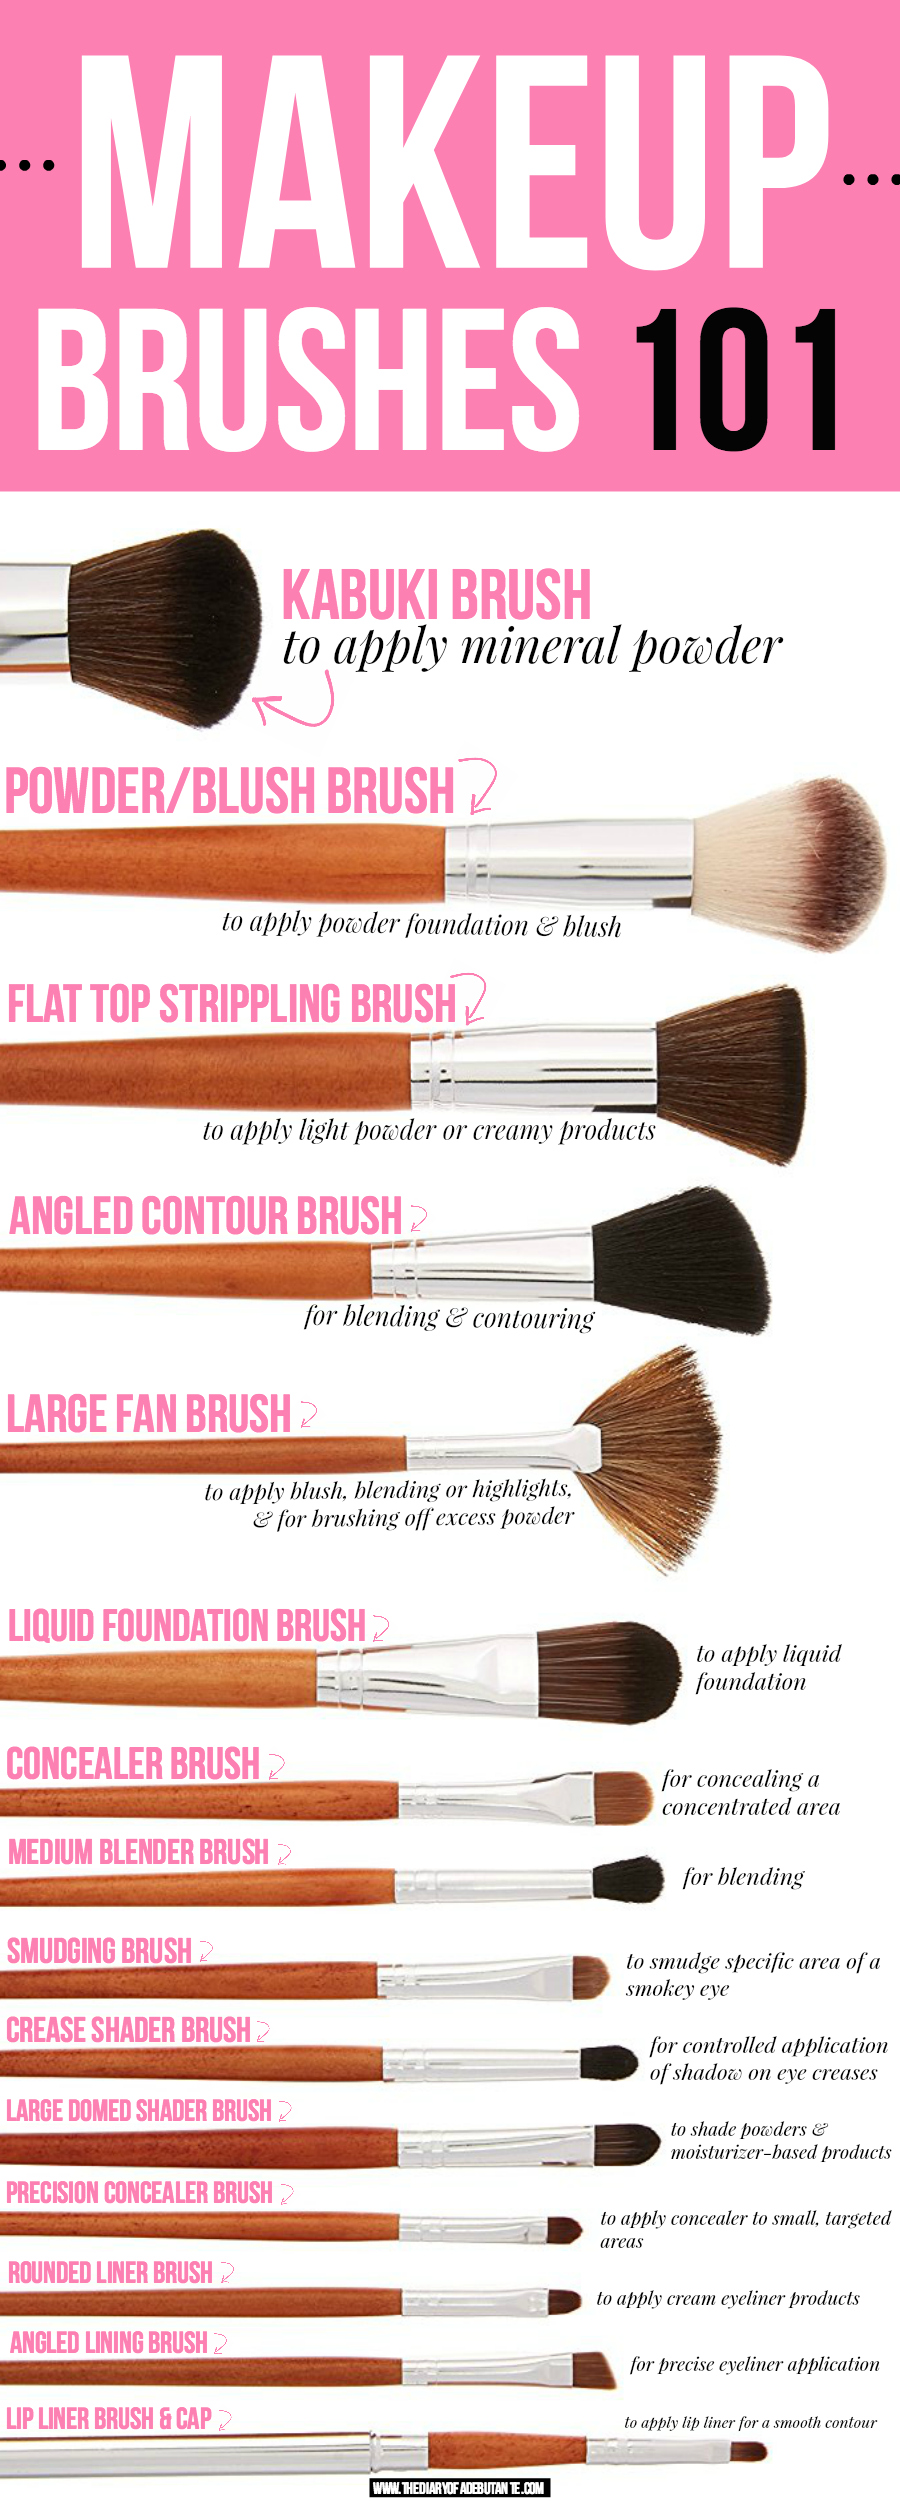 how to clean makeup eyeshadow brushes